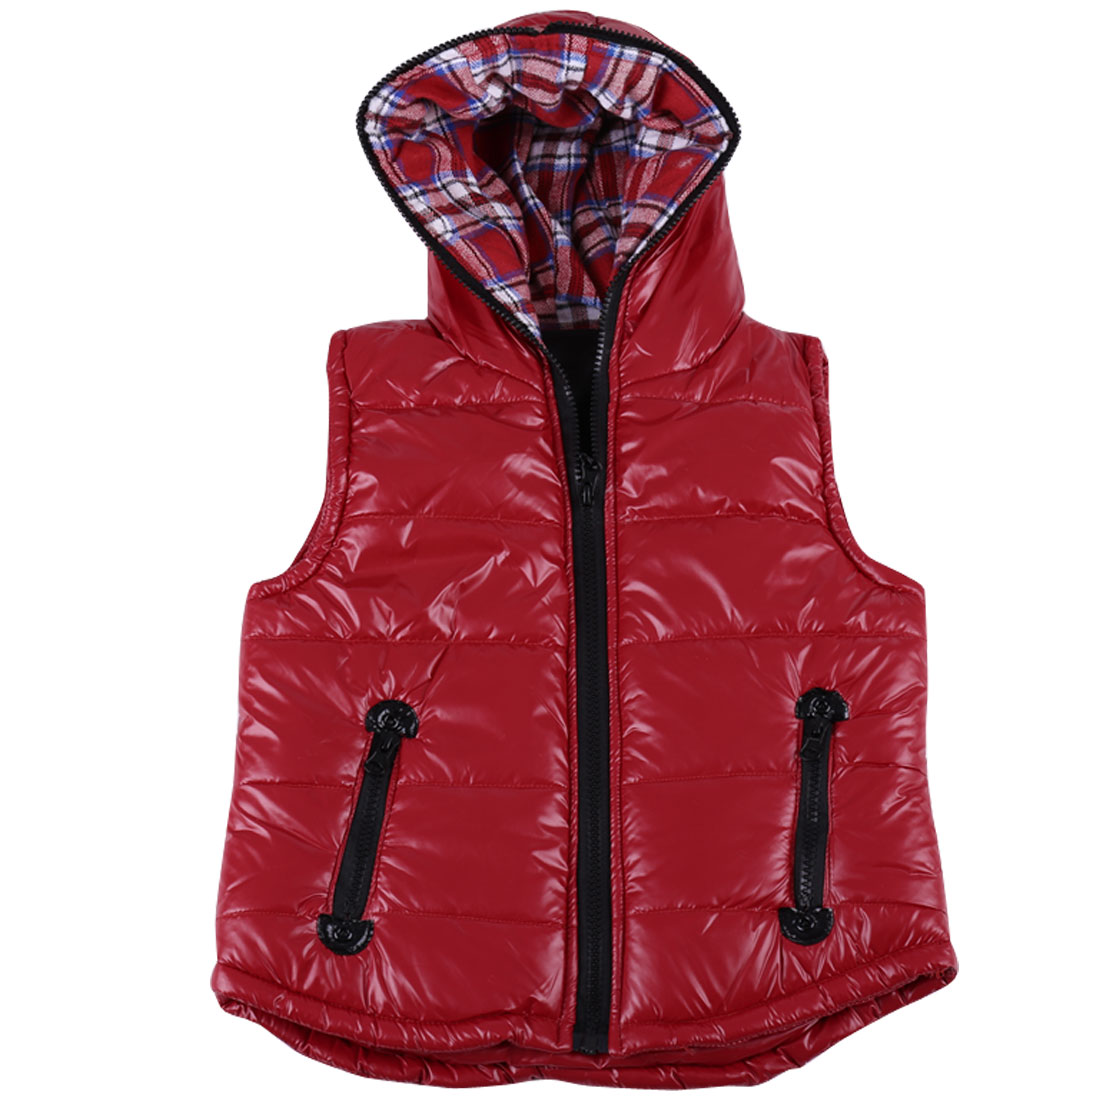 Girls Hooded Pockets Front Spring Wearing Warm Vest Red 8